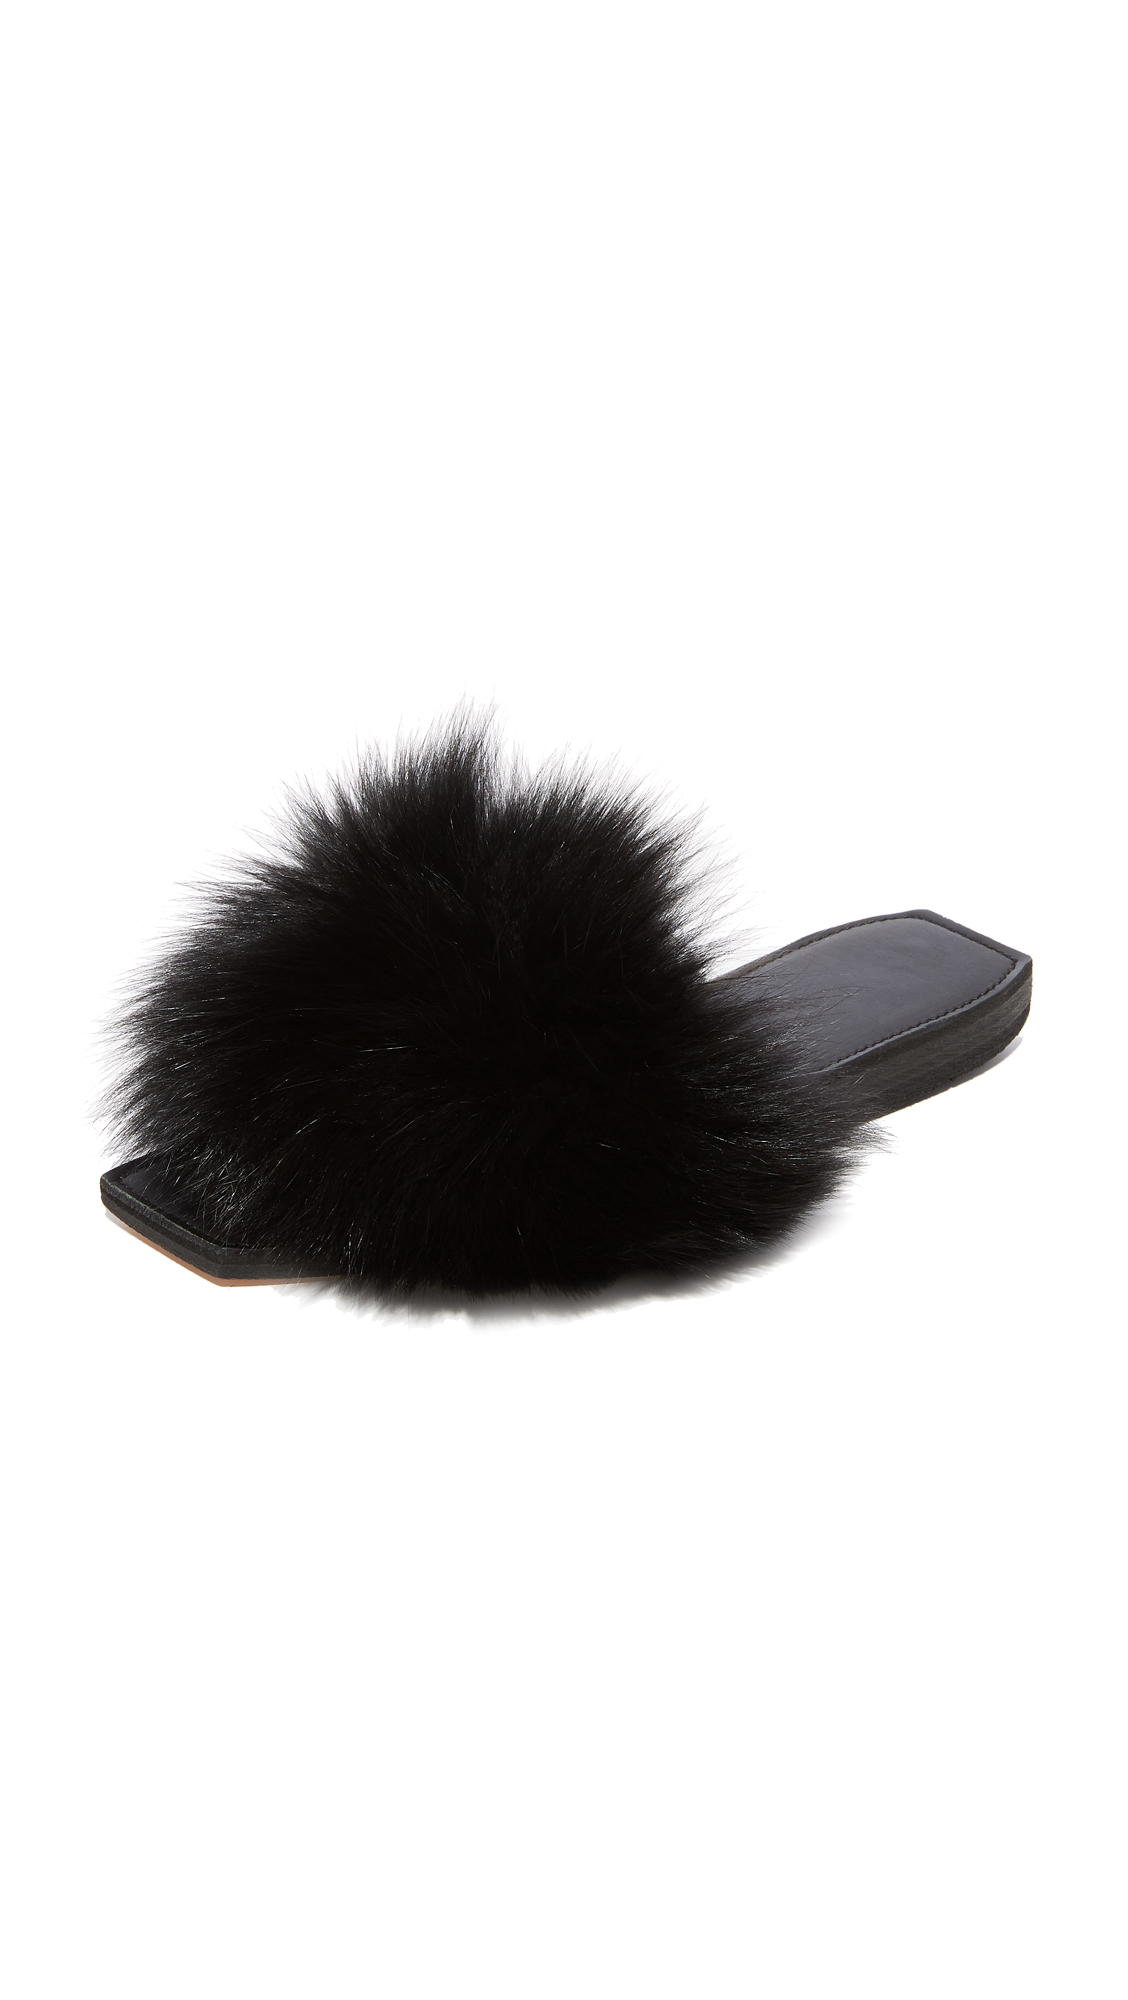 ONE by Furry Baby Slides - Black Fur/Black